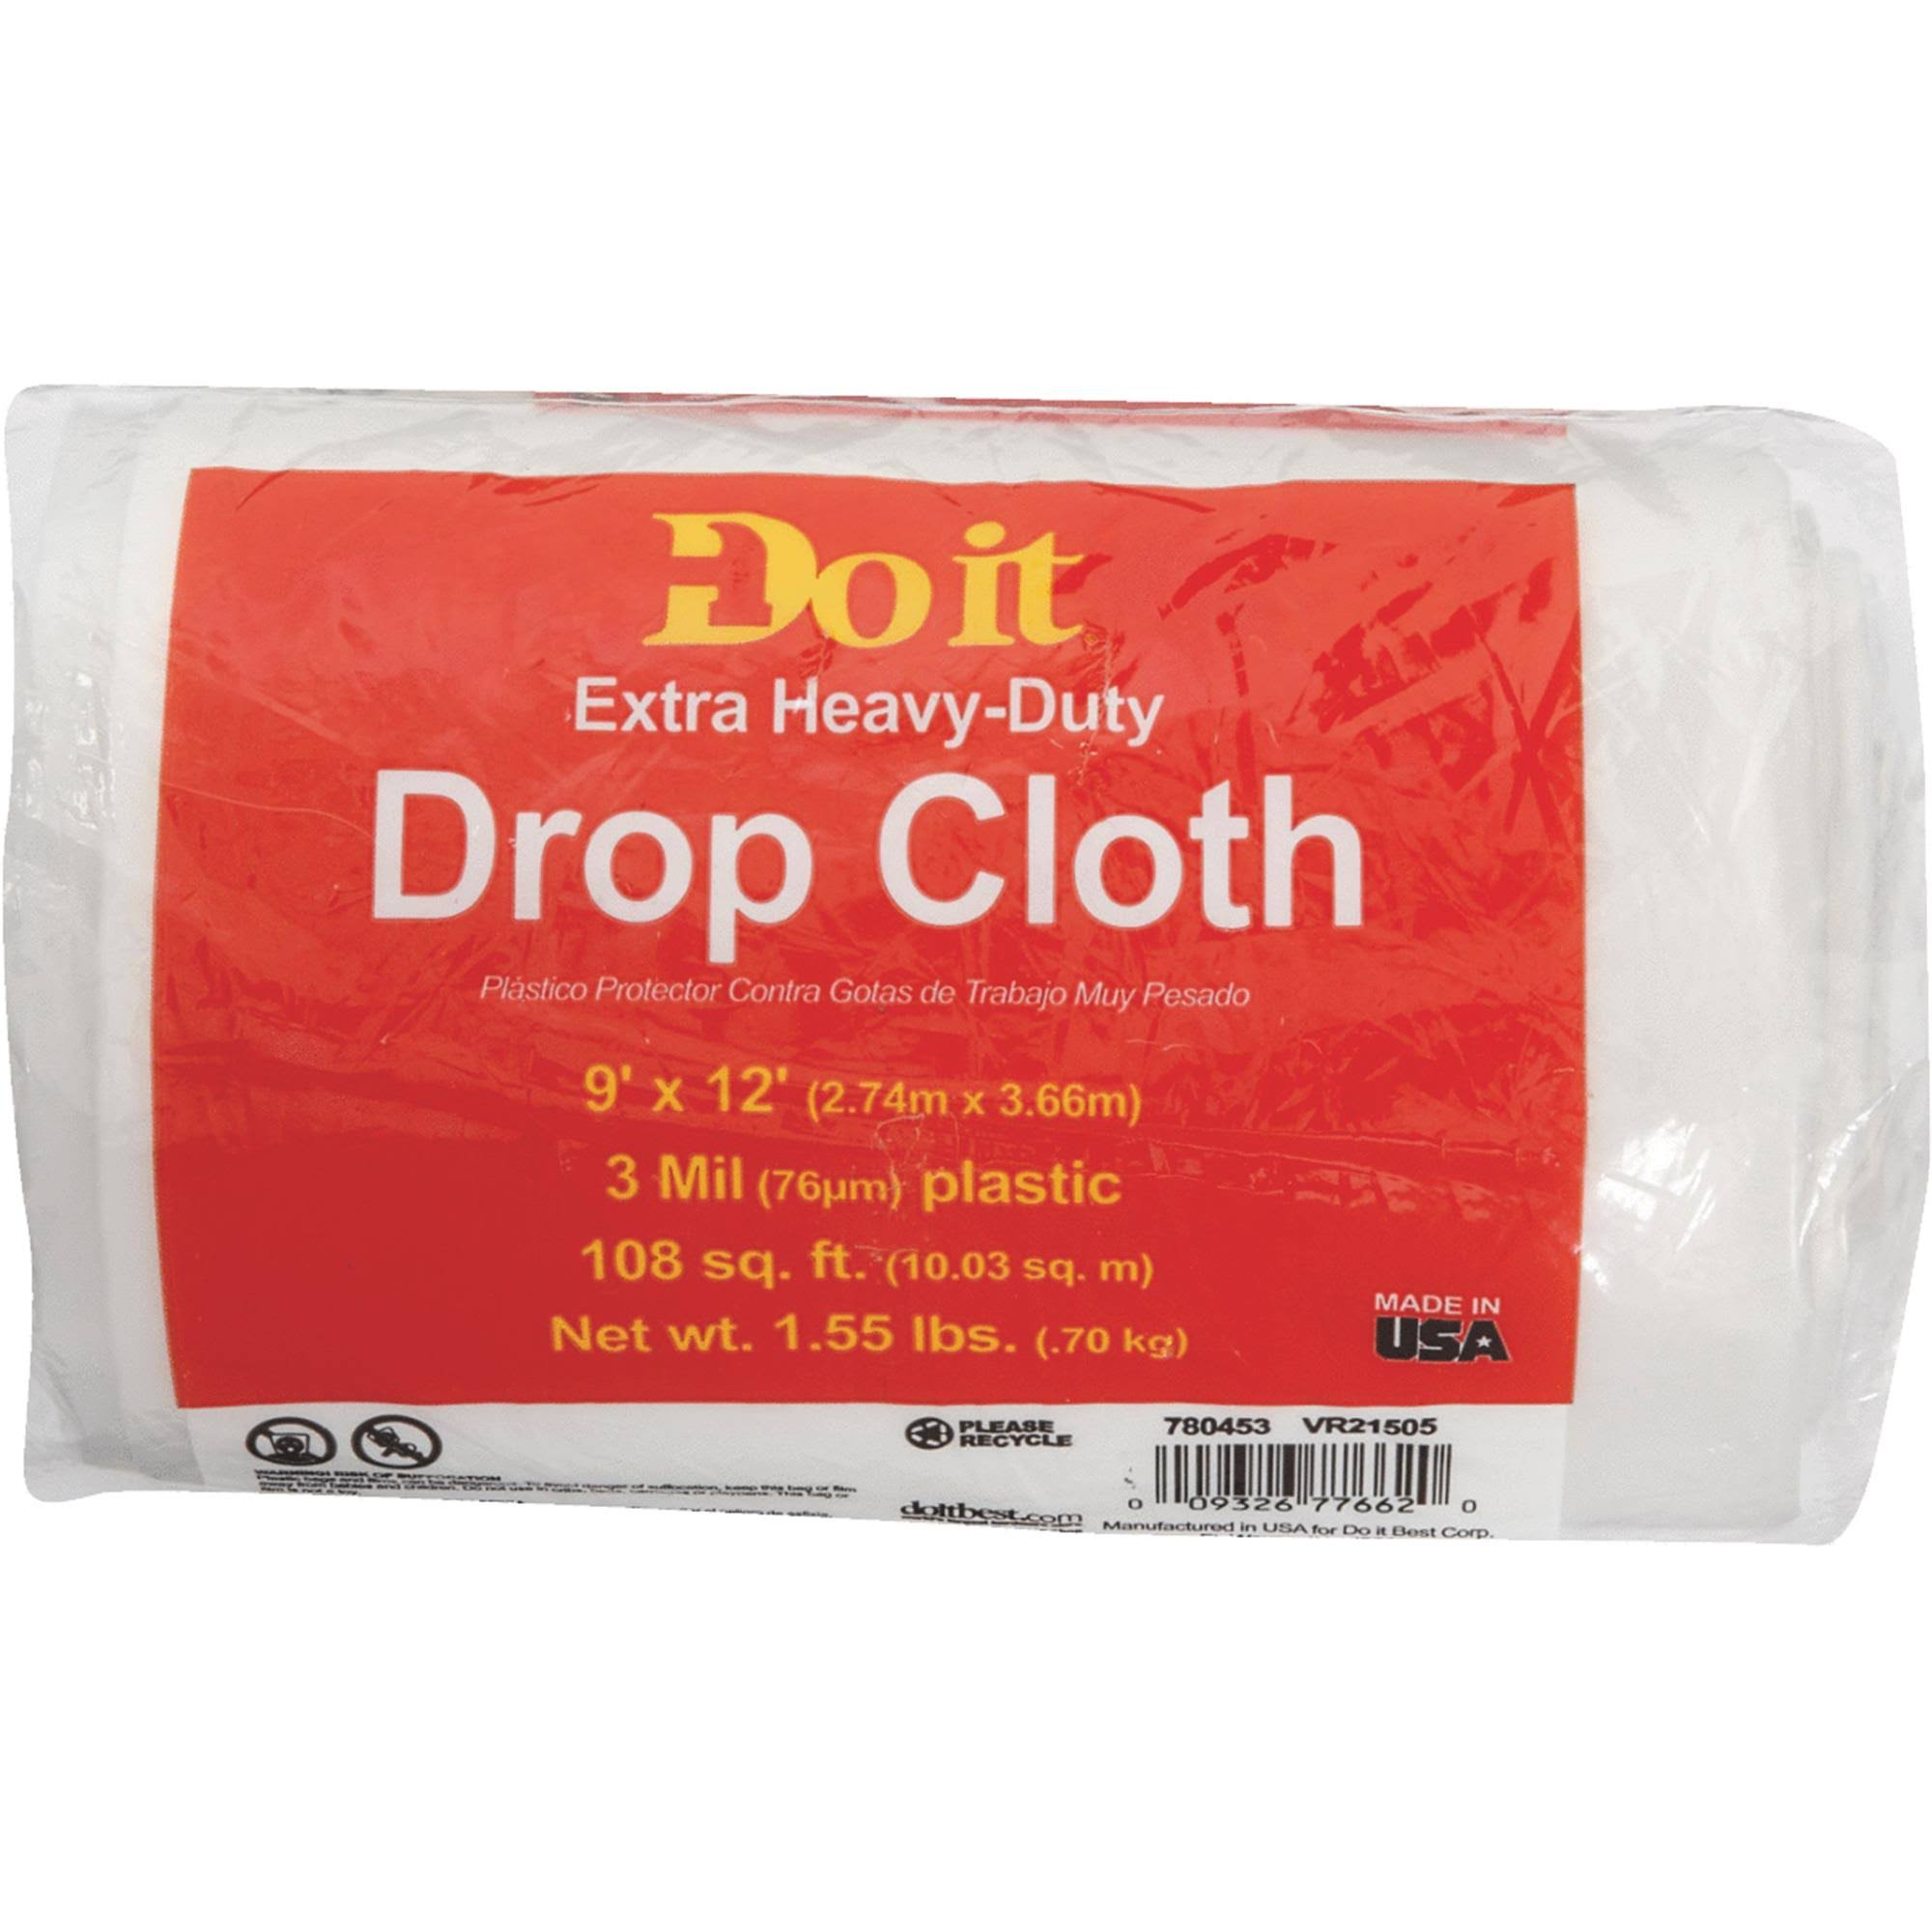 Do It Plastic Drop Cloth - 3 Mil, 9' X 12'